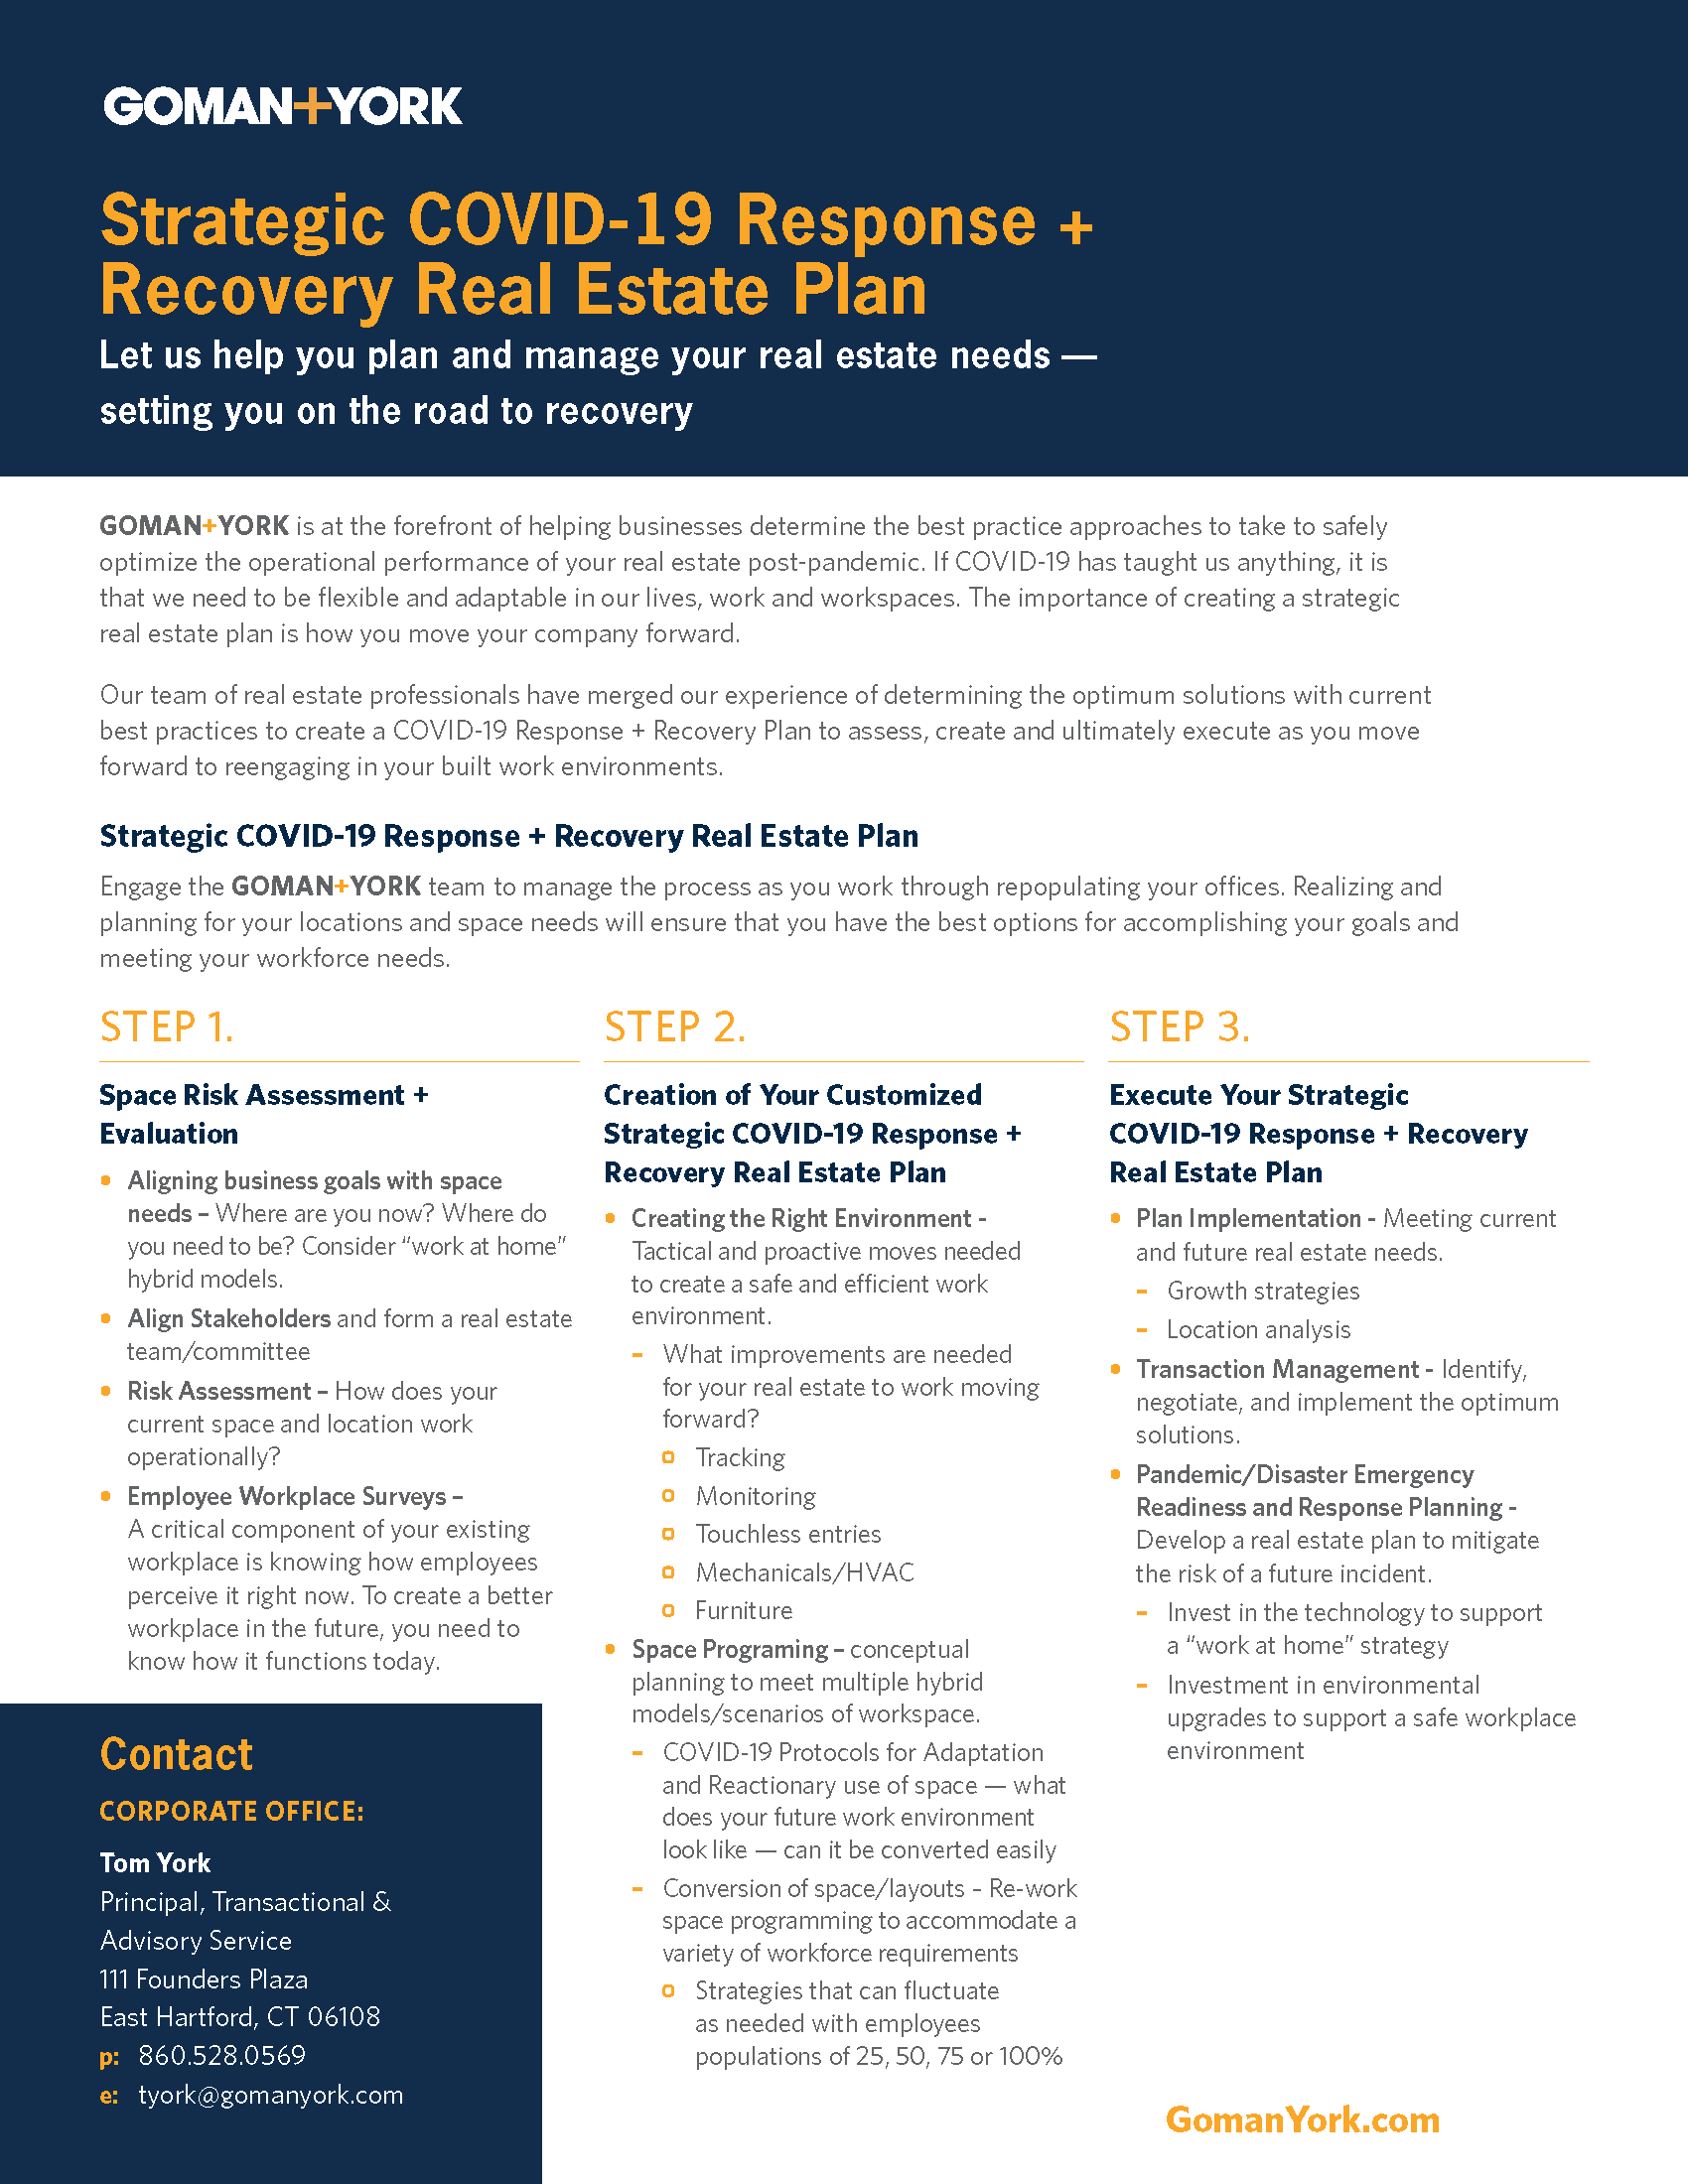 Download brochure - COVID-19 Recovery Real Estate Plan (PDF)